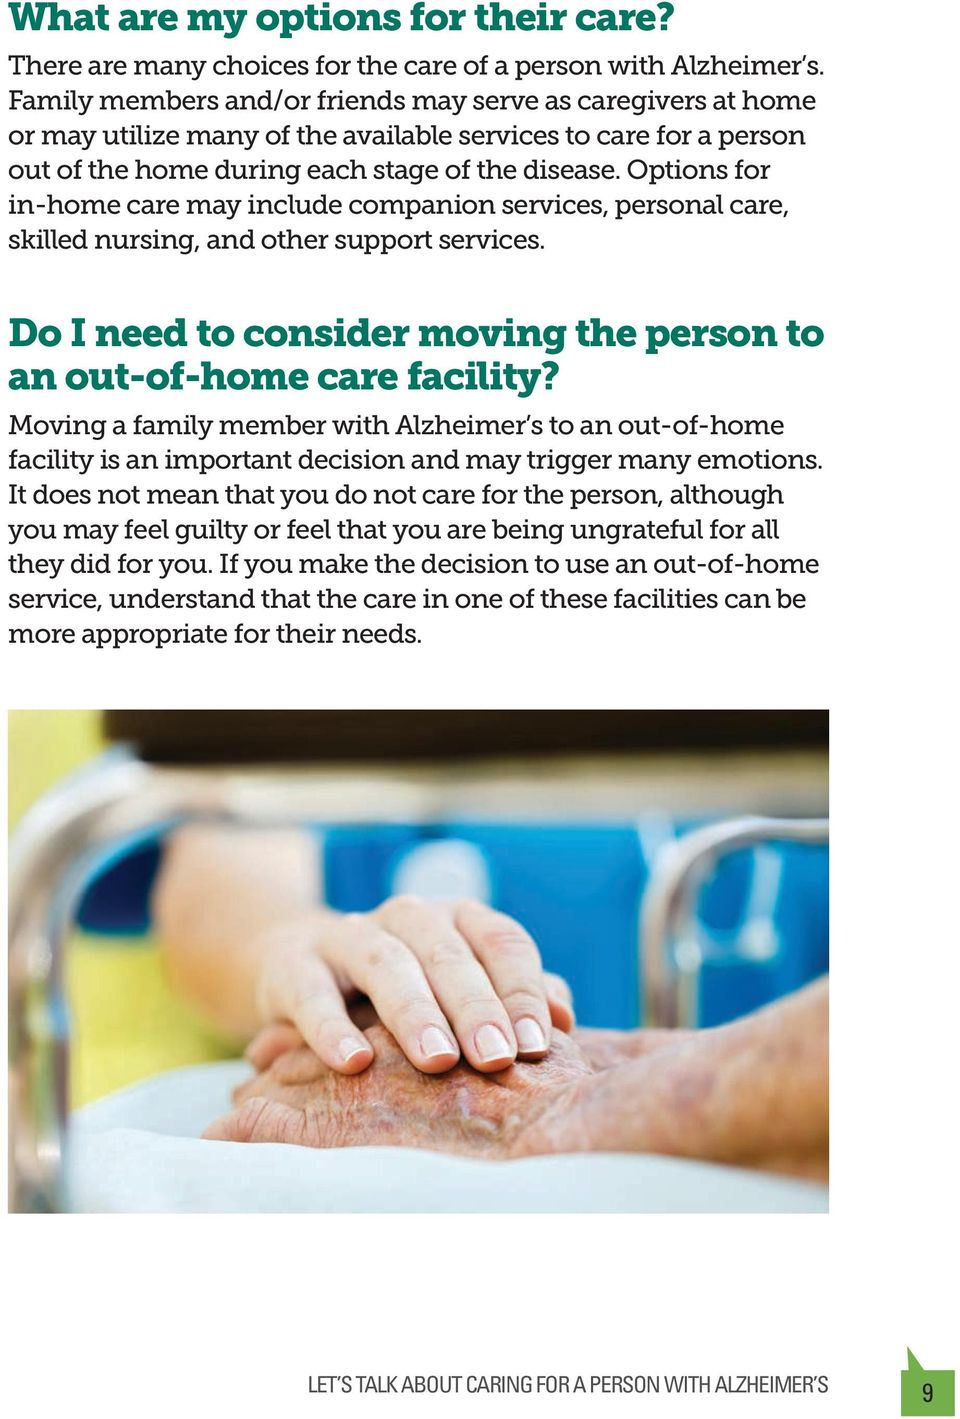 Options for in-home care may include companion services, personal care, skilled nursing, and other support services. Do I need to consider moving the person to an out-of-home care facility?